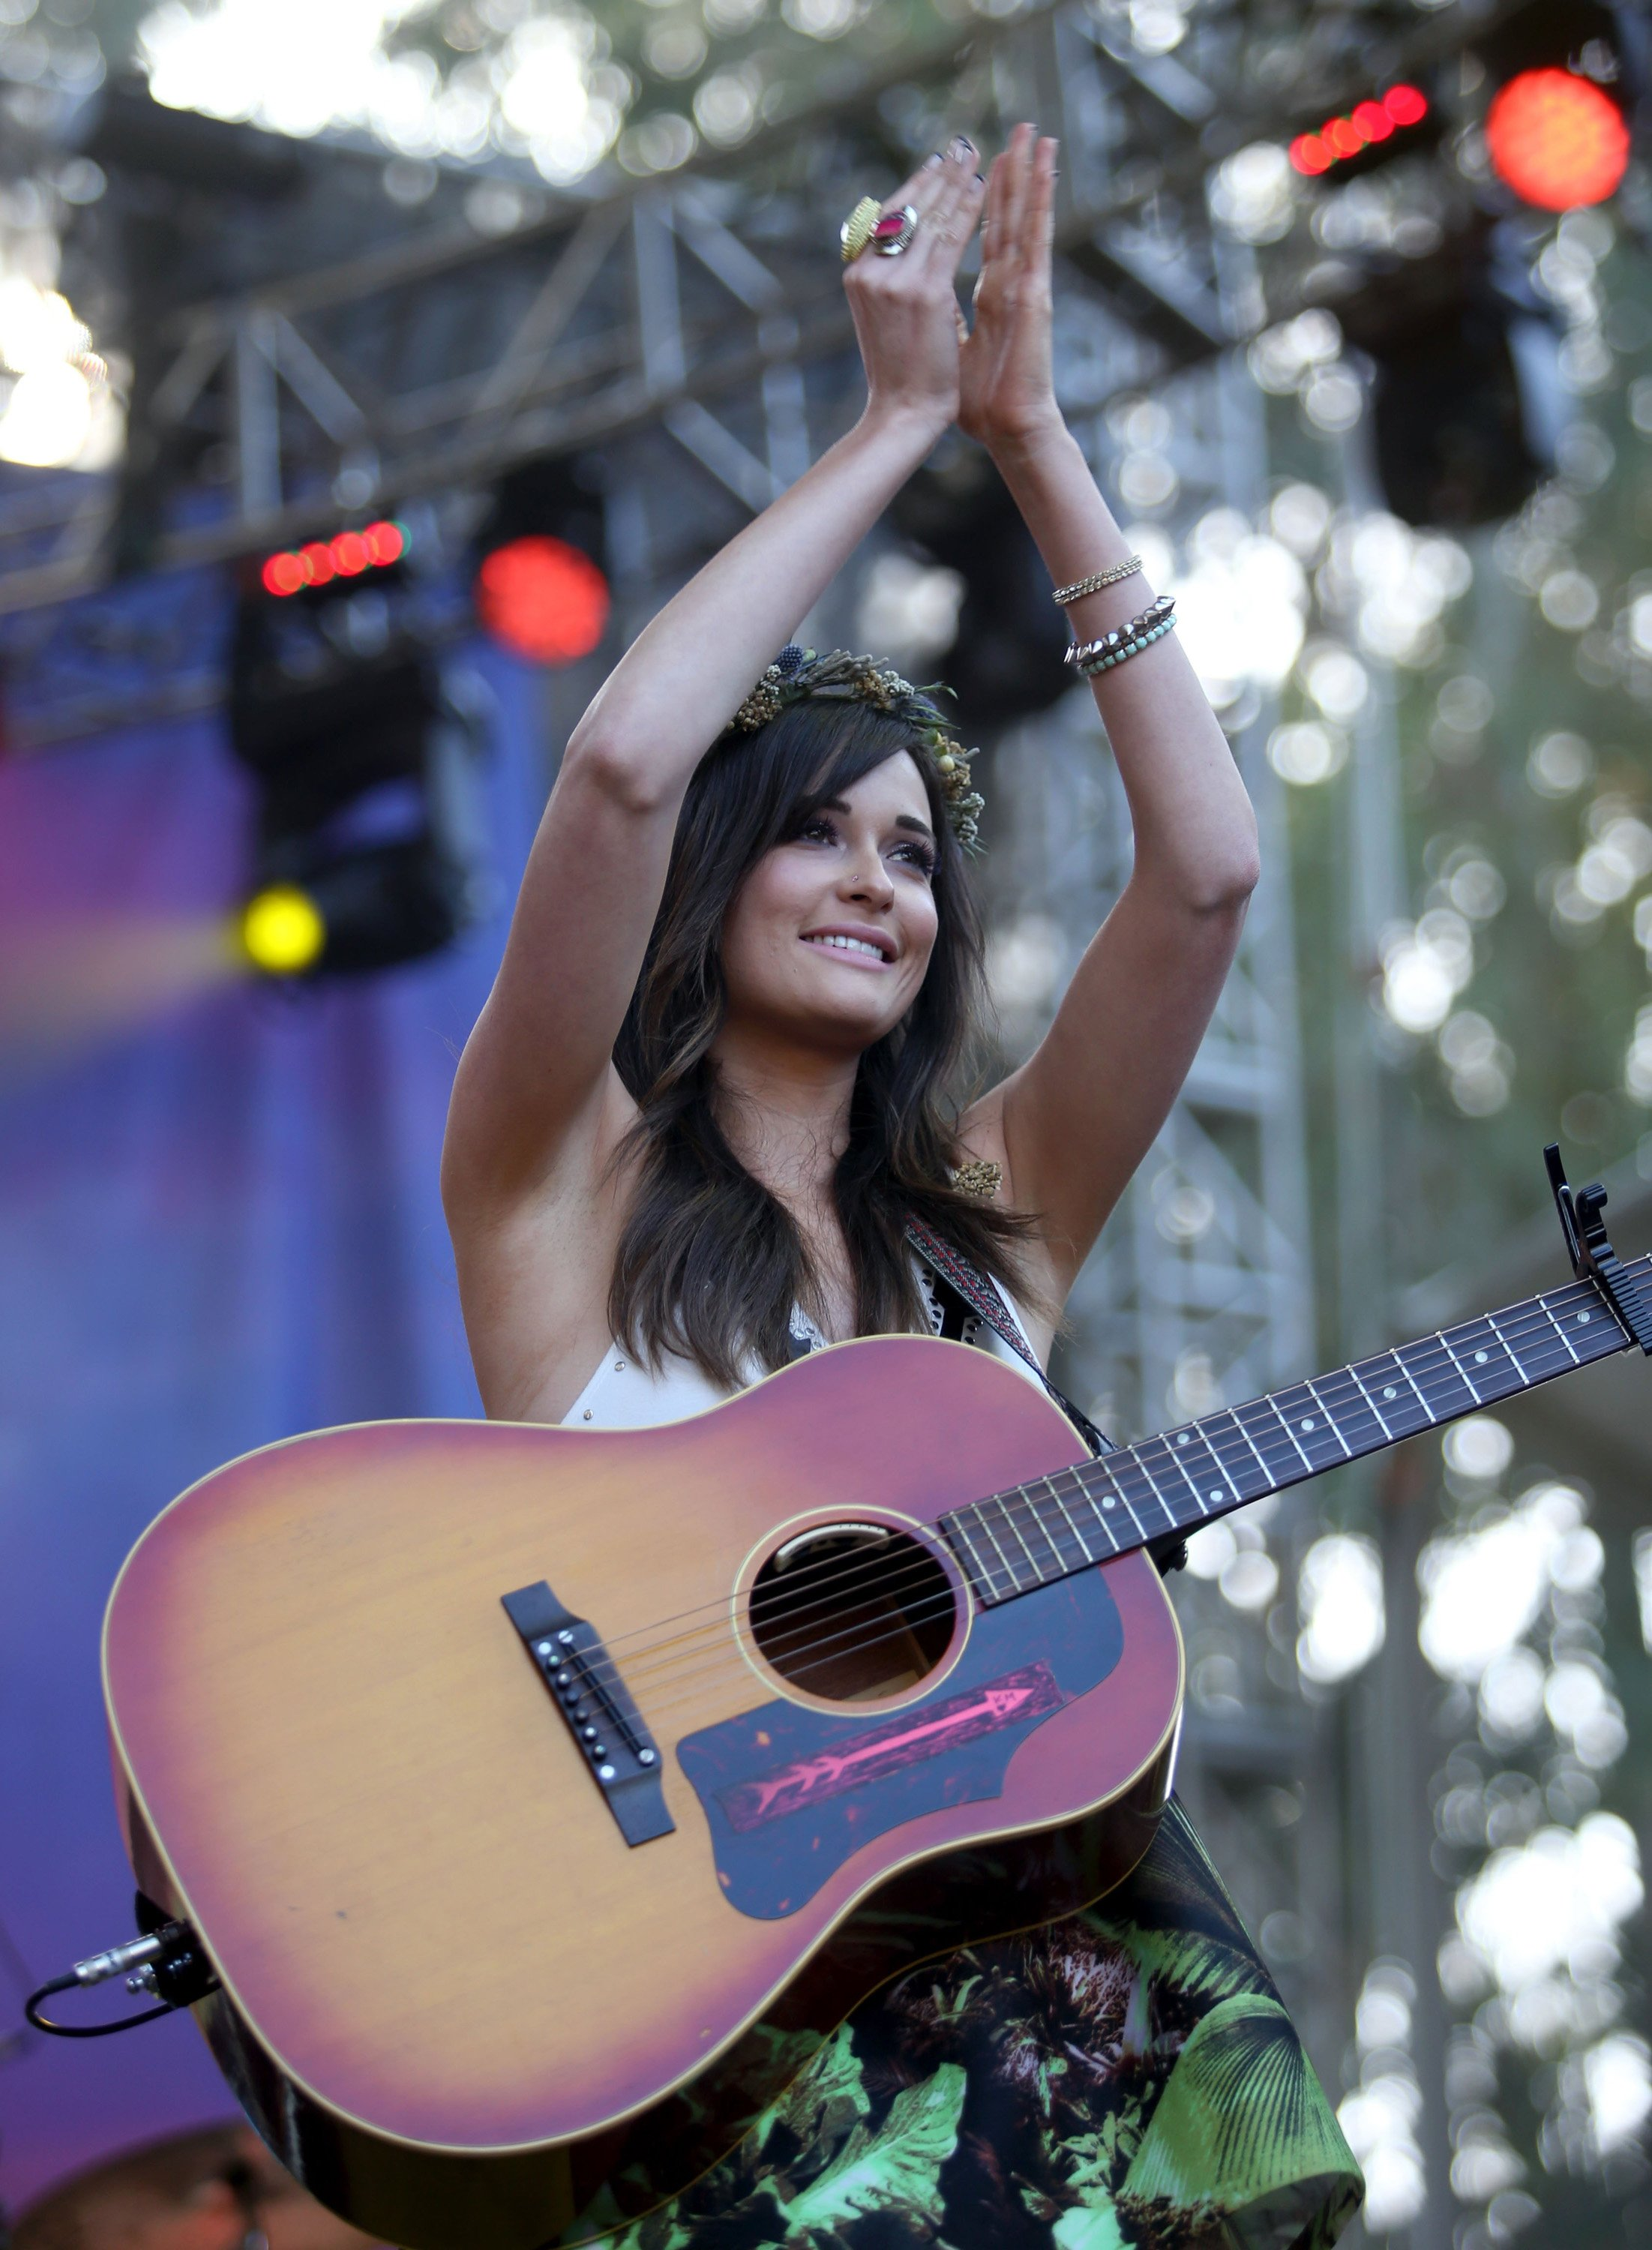 Kacey Musgraves performs on the Sutro stage during day one of the Outside Lands music festival at Golden Gate Park in San Francisco on August 8, 2014. The festival runs through Sunday. (Jane Tyska/Bay Area News Group/MCT)